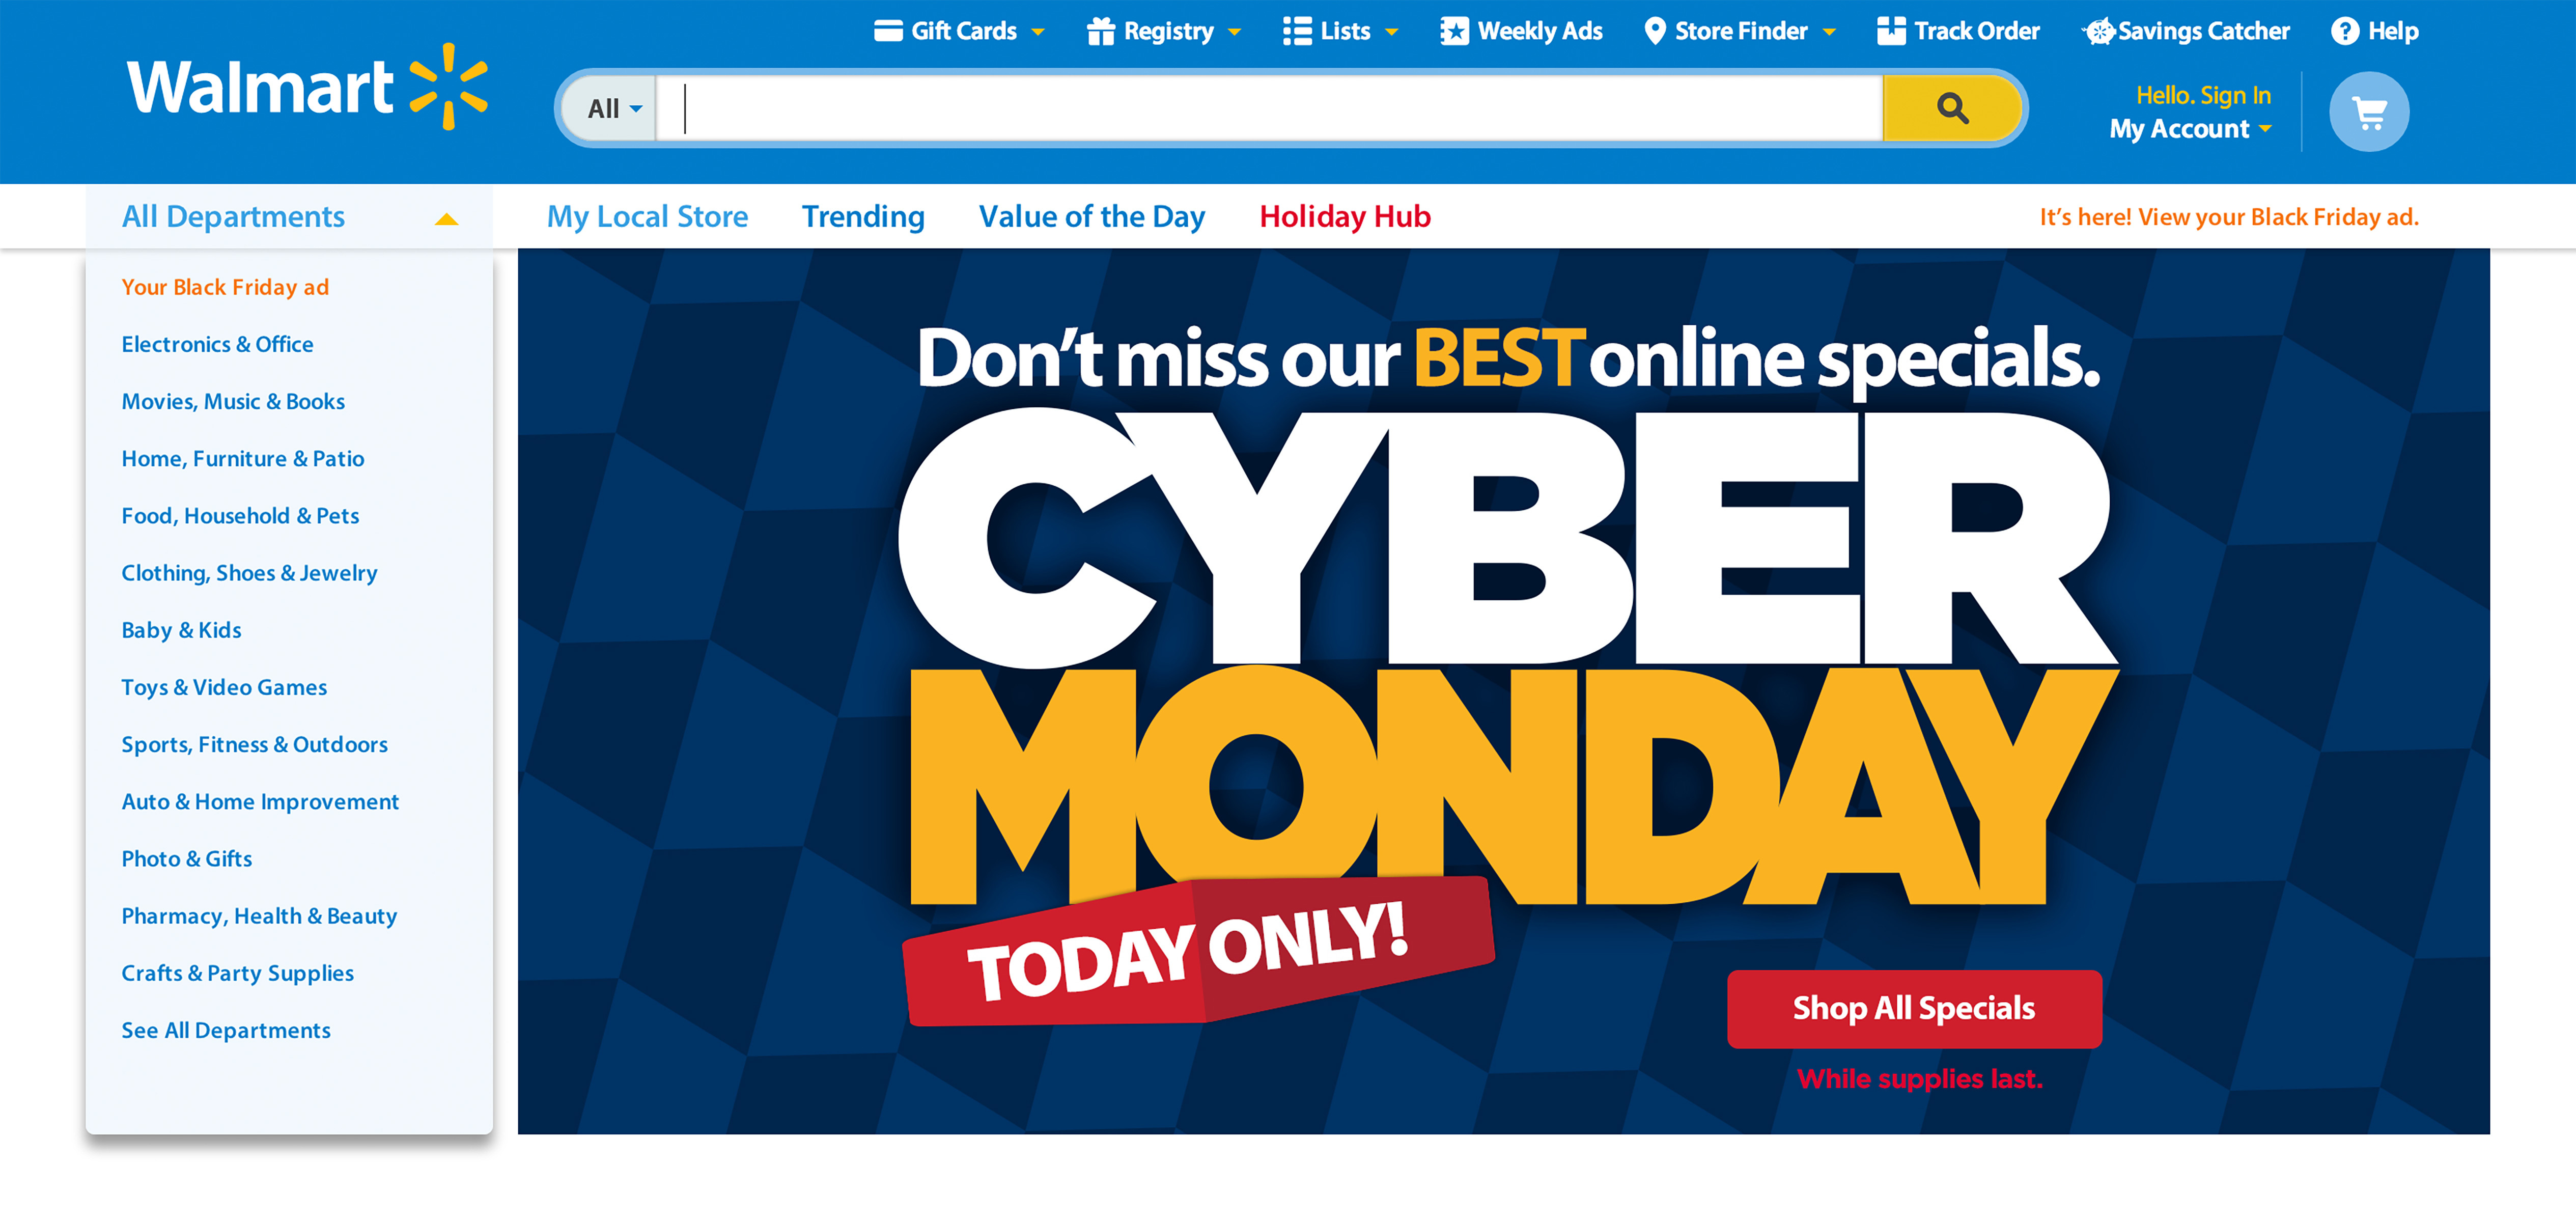 Walmart Doubles The Number Of Deals For Cyber Monday With Top Gifts Up To Half Off Business Wire